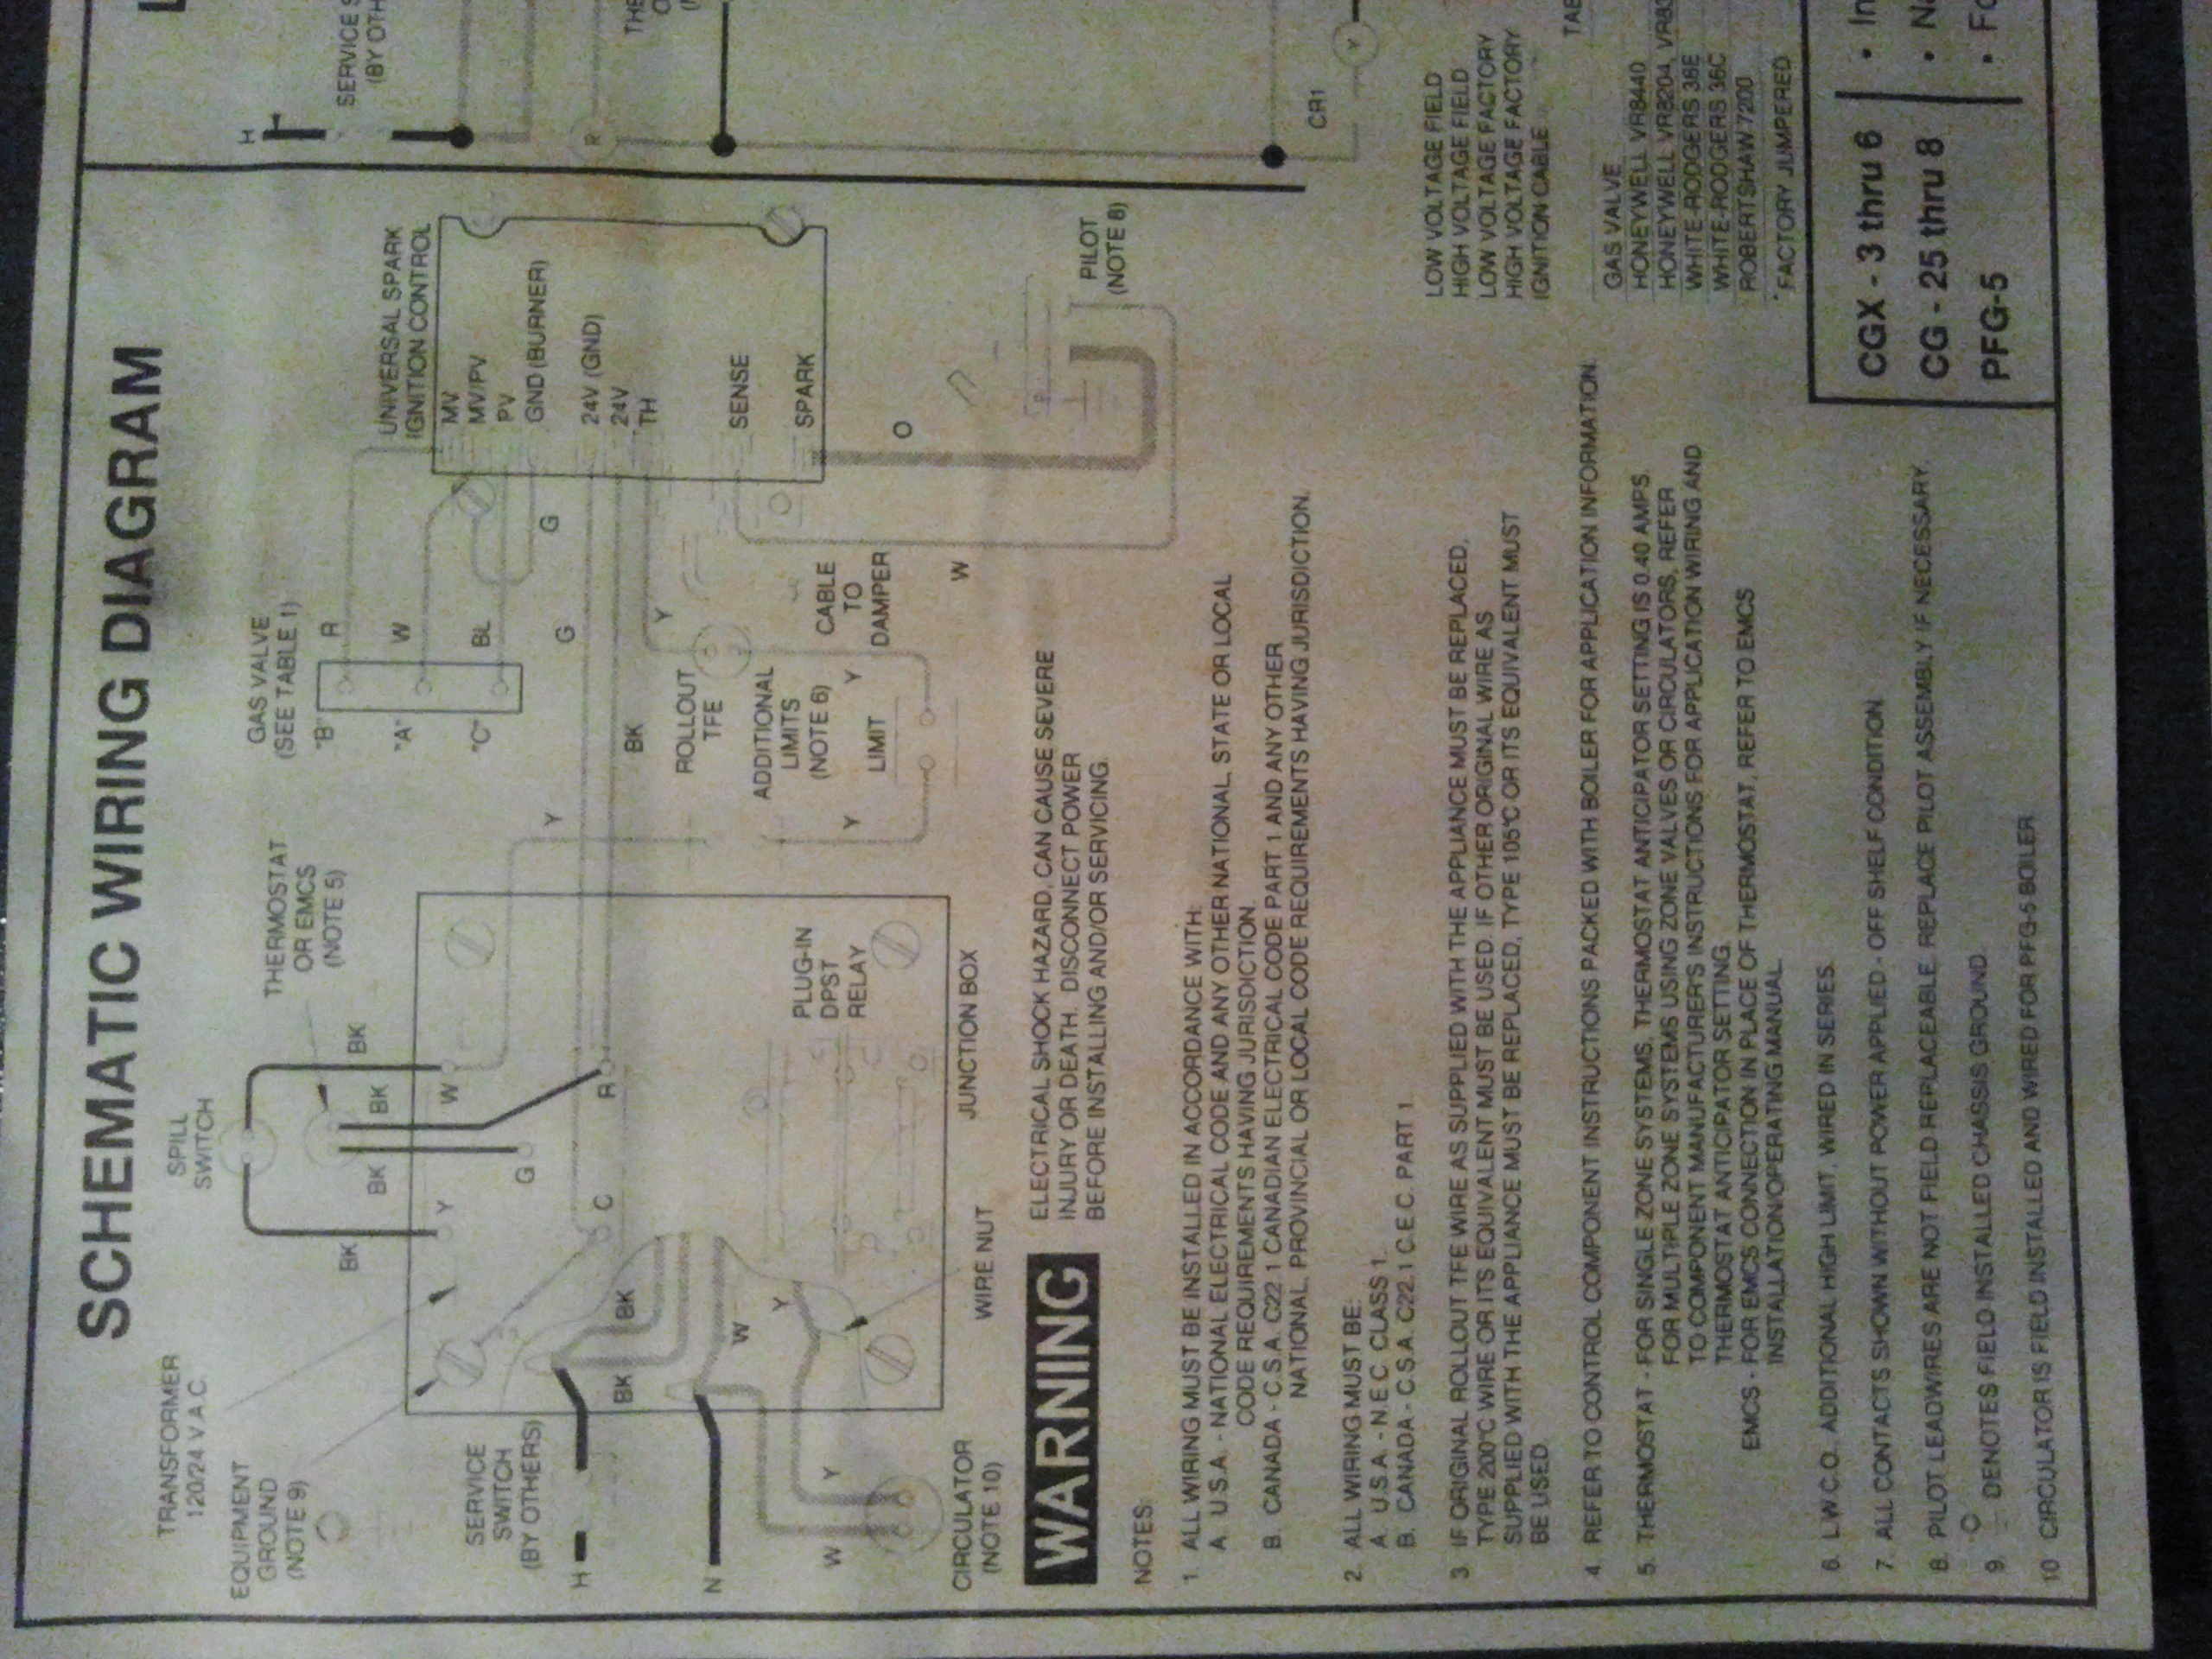 2013 01 11_235352_2013 01 11_18.05.08 i have a weil mclain gas furnace that i installed in 1991 a automatic vent damper wiring diagram at readyjetset.co